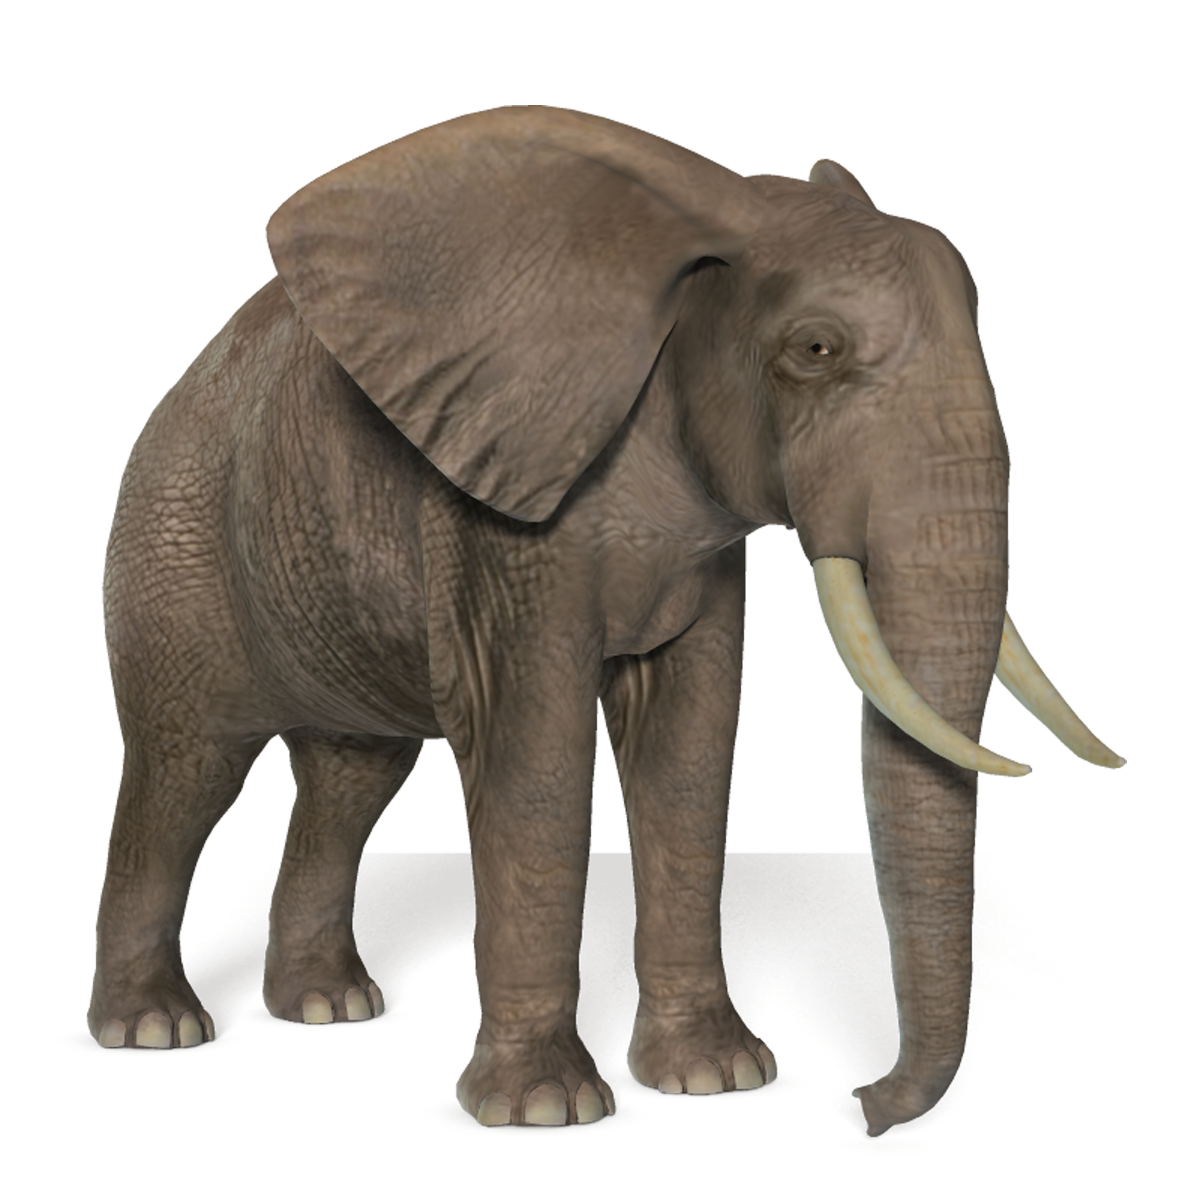 elephant transparent png